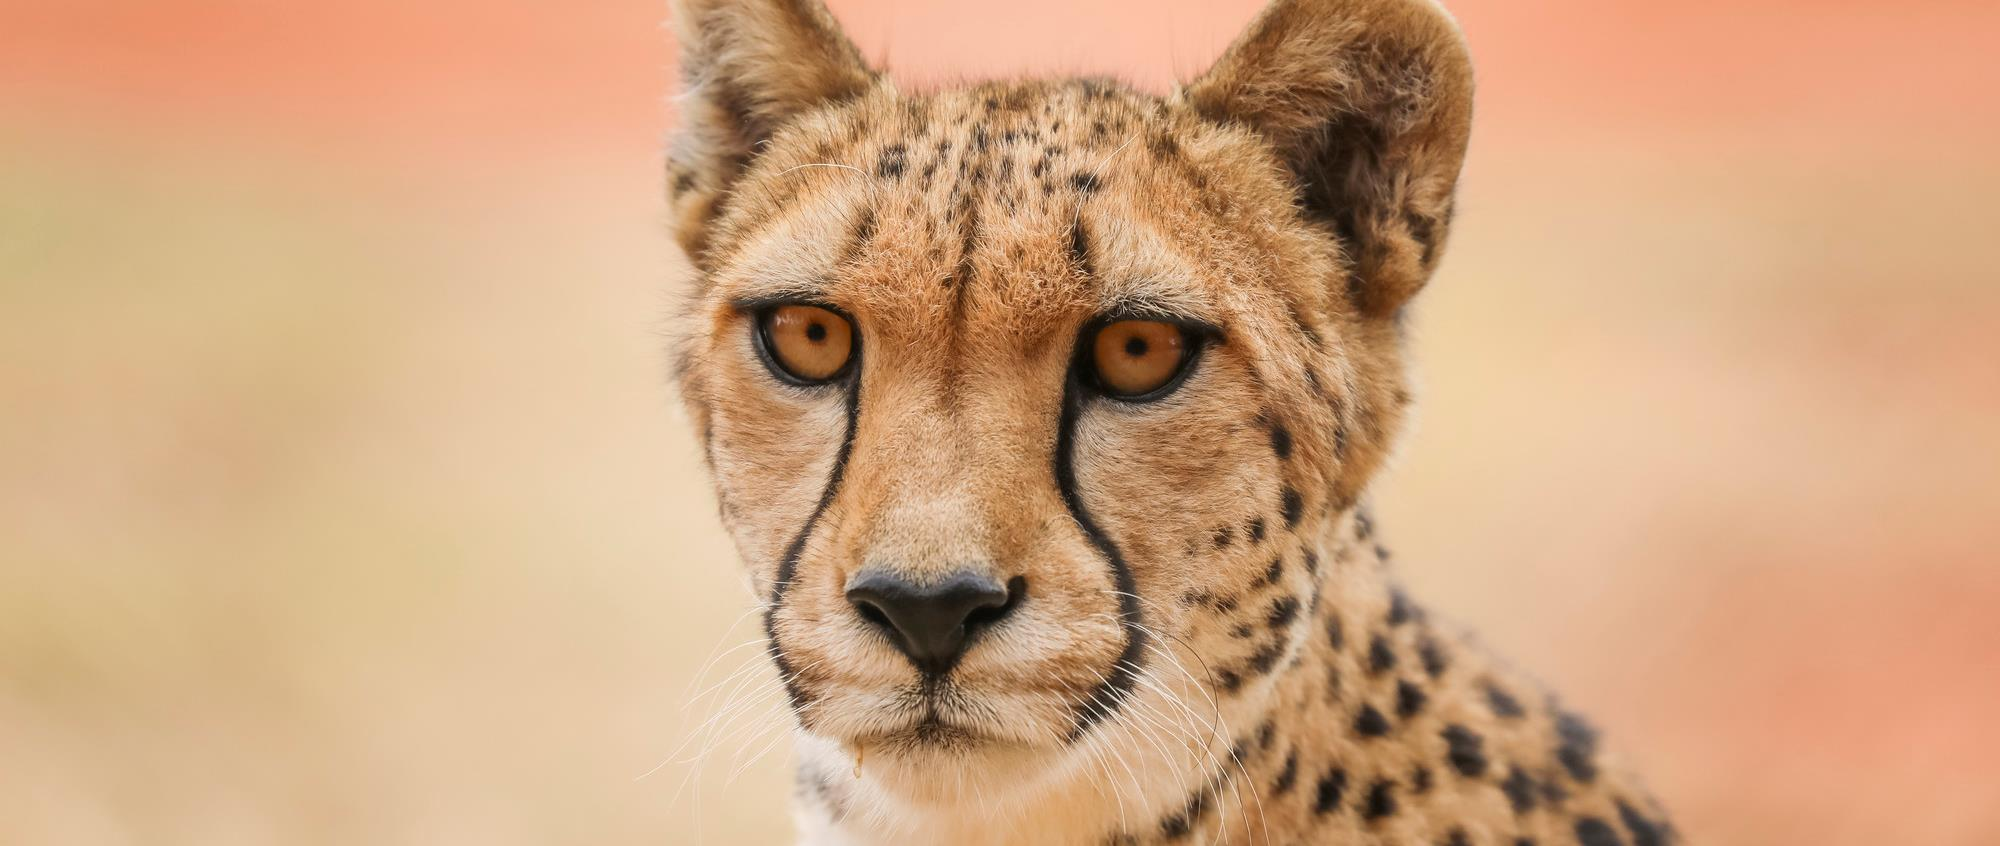 Cheetah Kulinda front of face profile. She is alert with her ears pricked forward and is looking intently just beyond the camera.